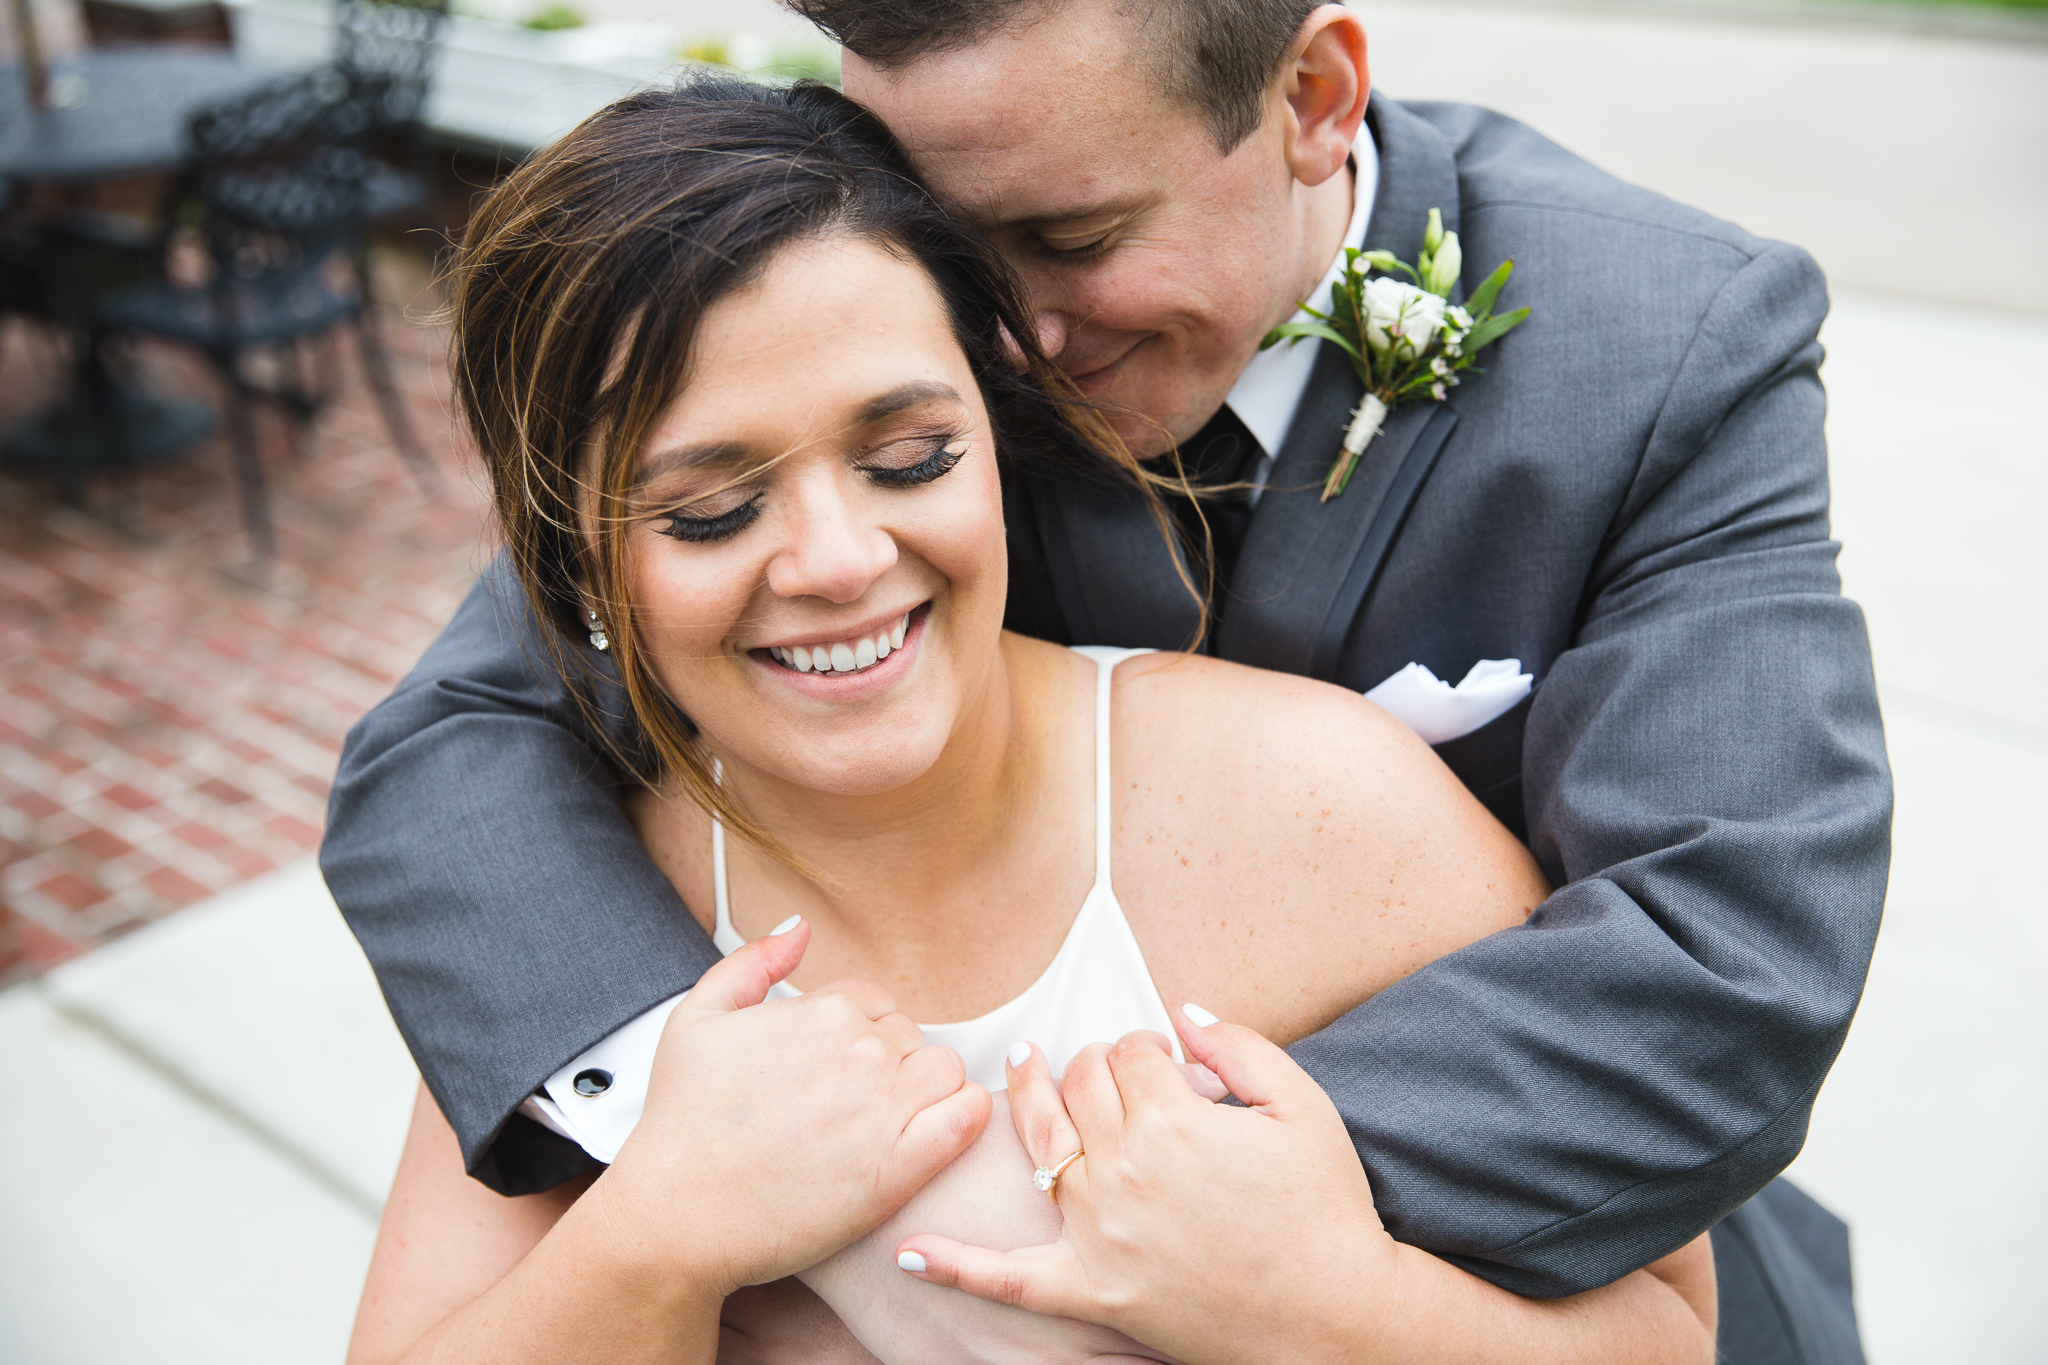 Christine and Ryan - We have received so many compliments. She went beyond our expectations all while making us feel so comfortable.